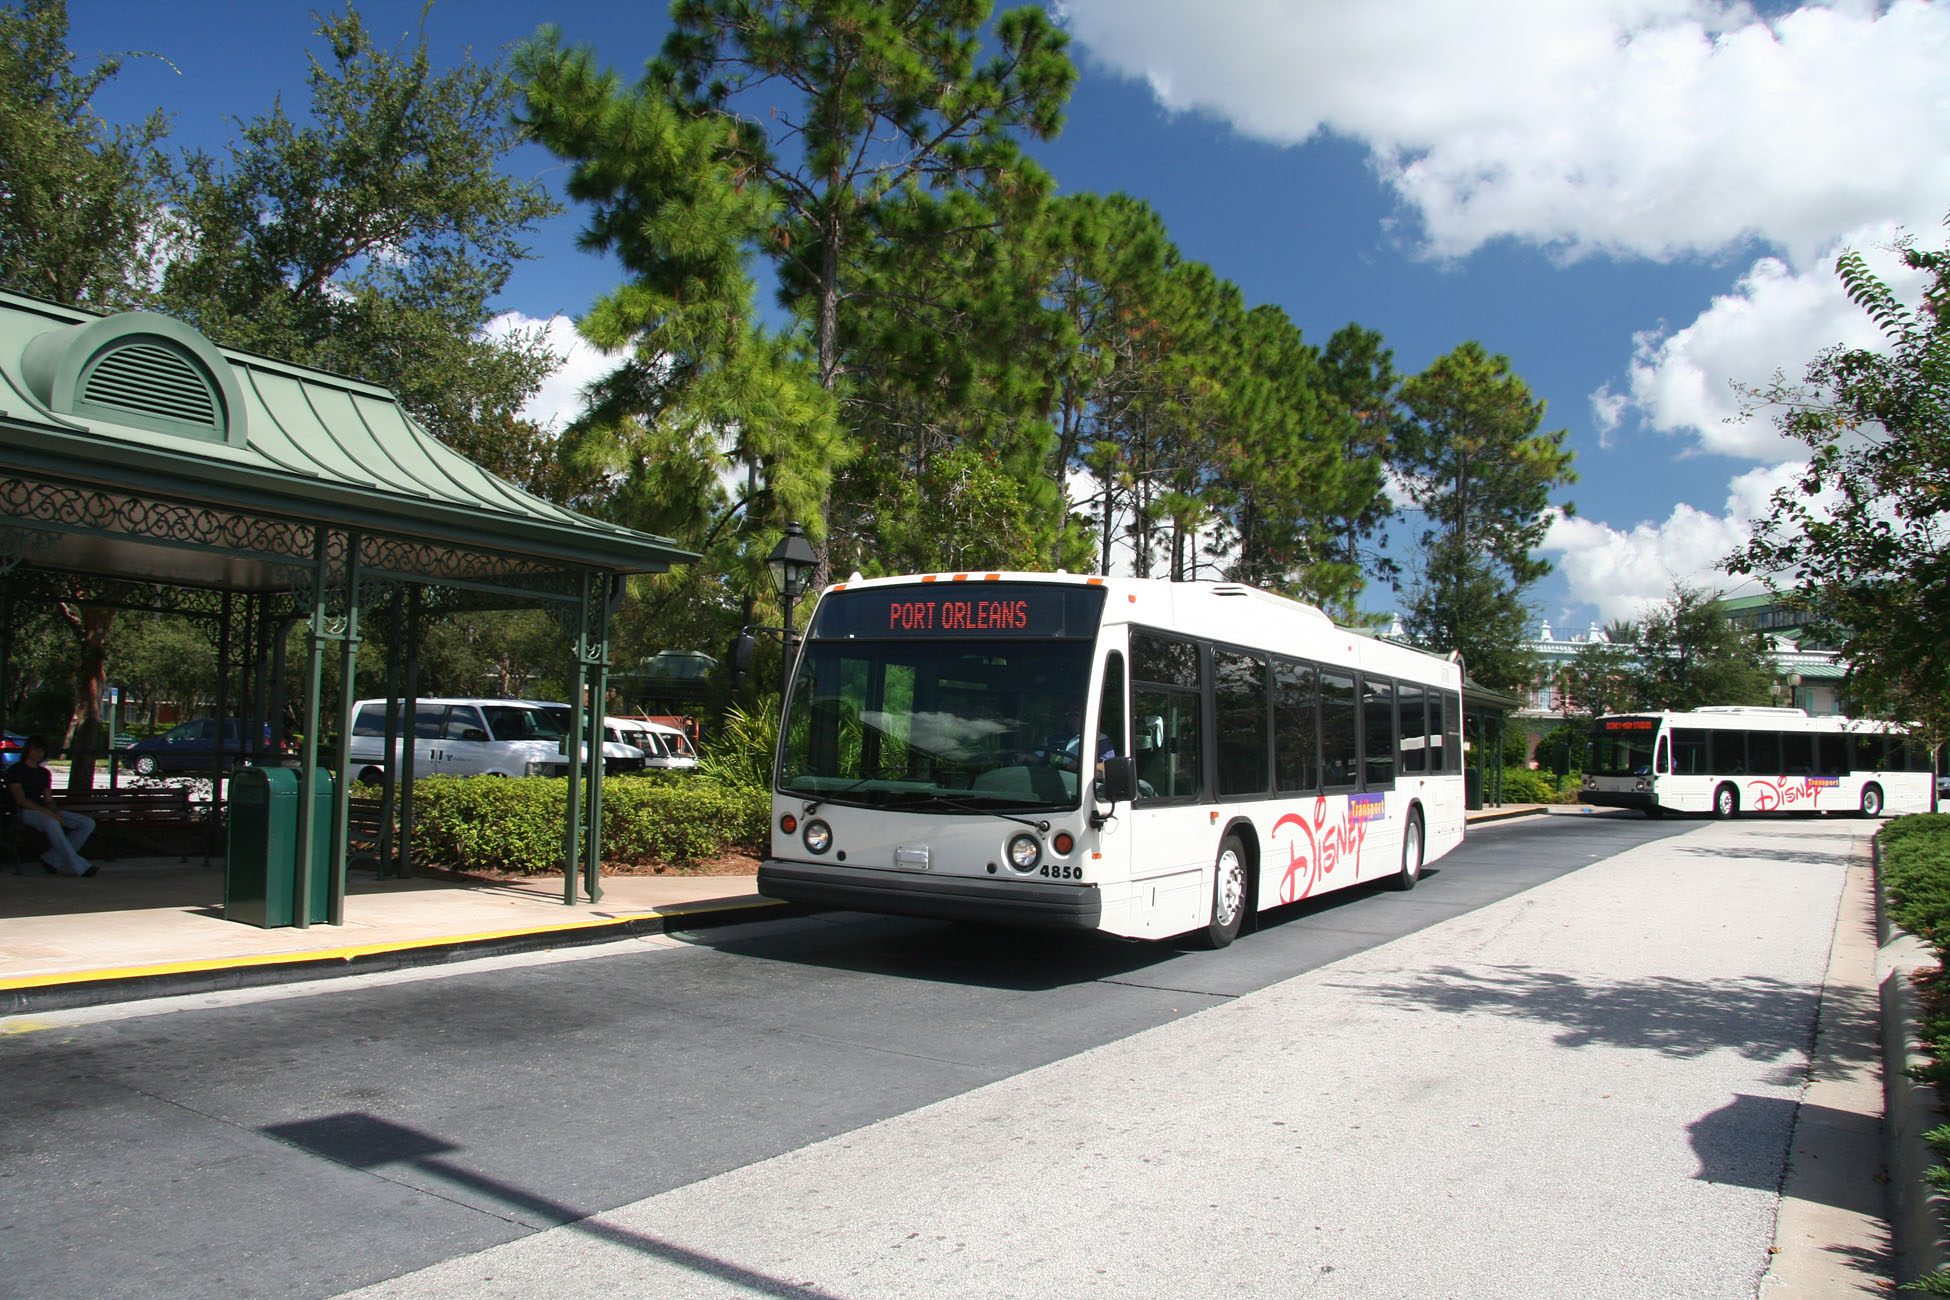 Port Orleans - Walt Disney World Buses